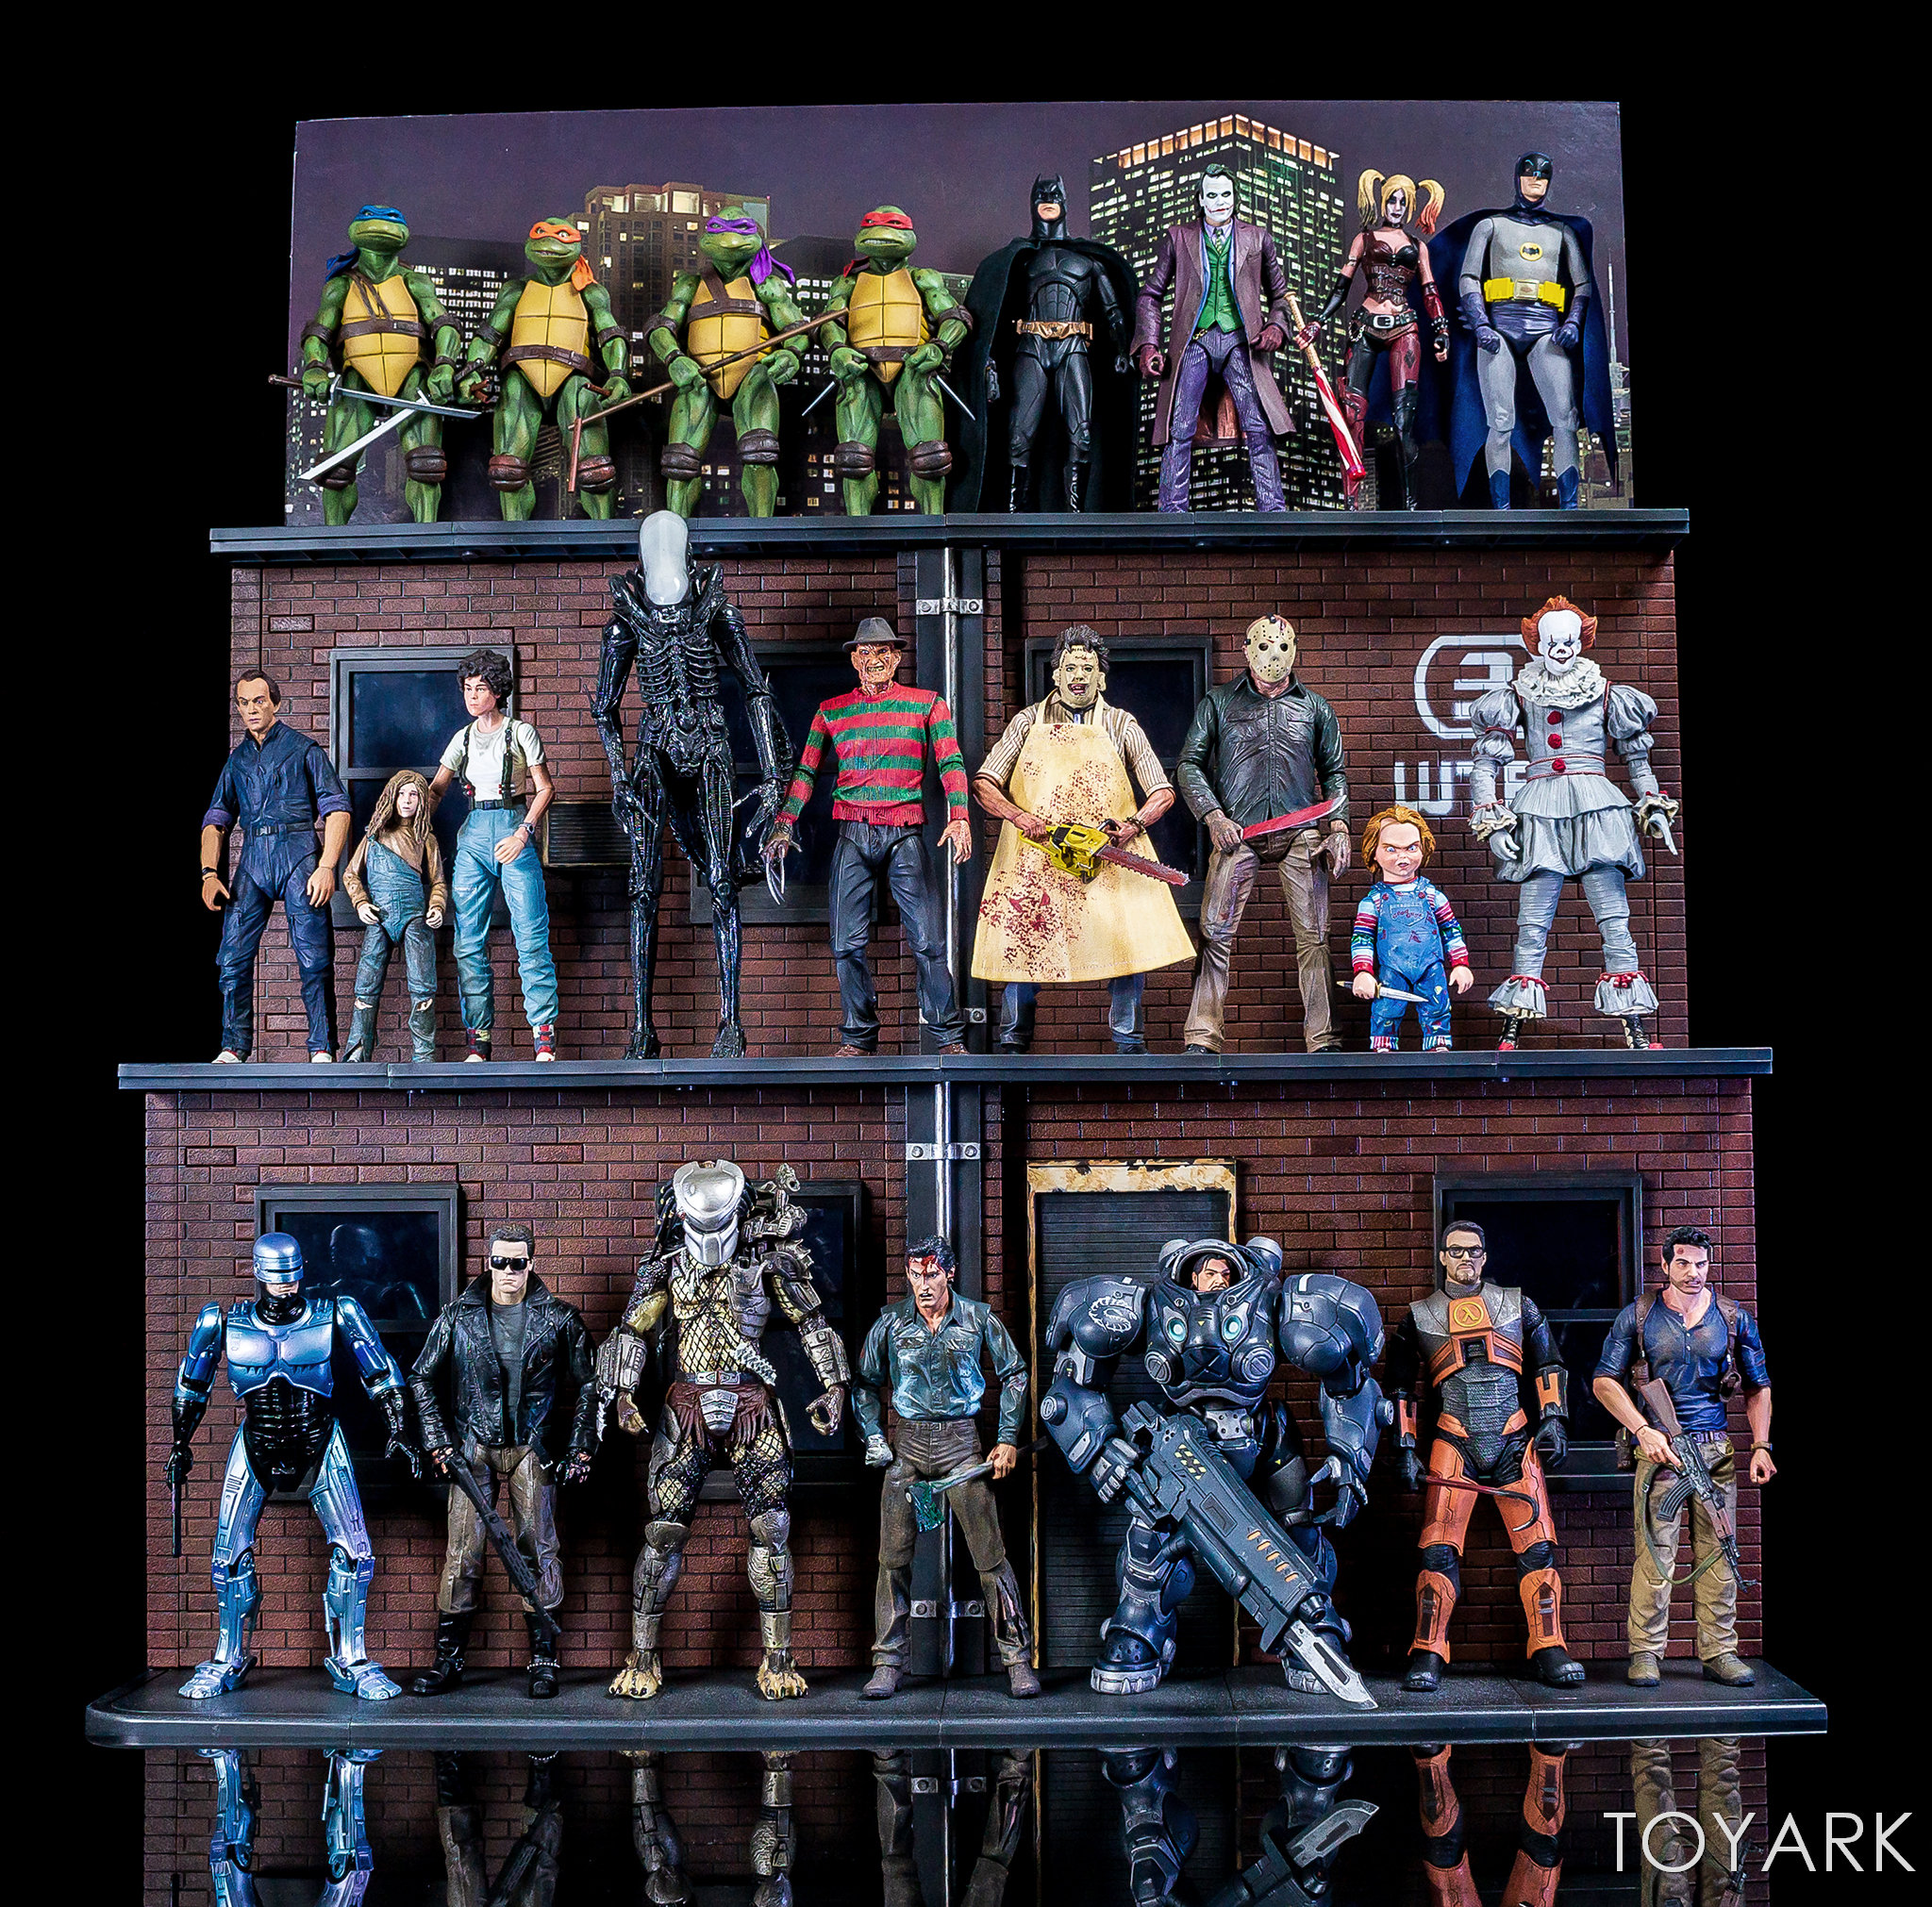 https://news.toyark.com/wp-content/uploads/sites/4/2018/07/NECA-TMNT-1990-and-Dio-Set-096.jpg